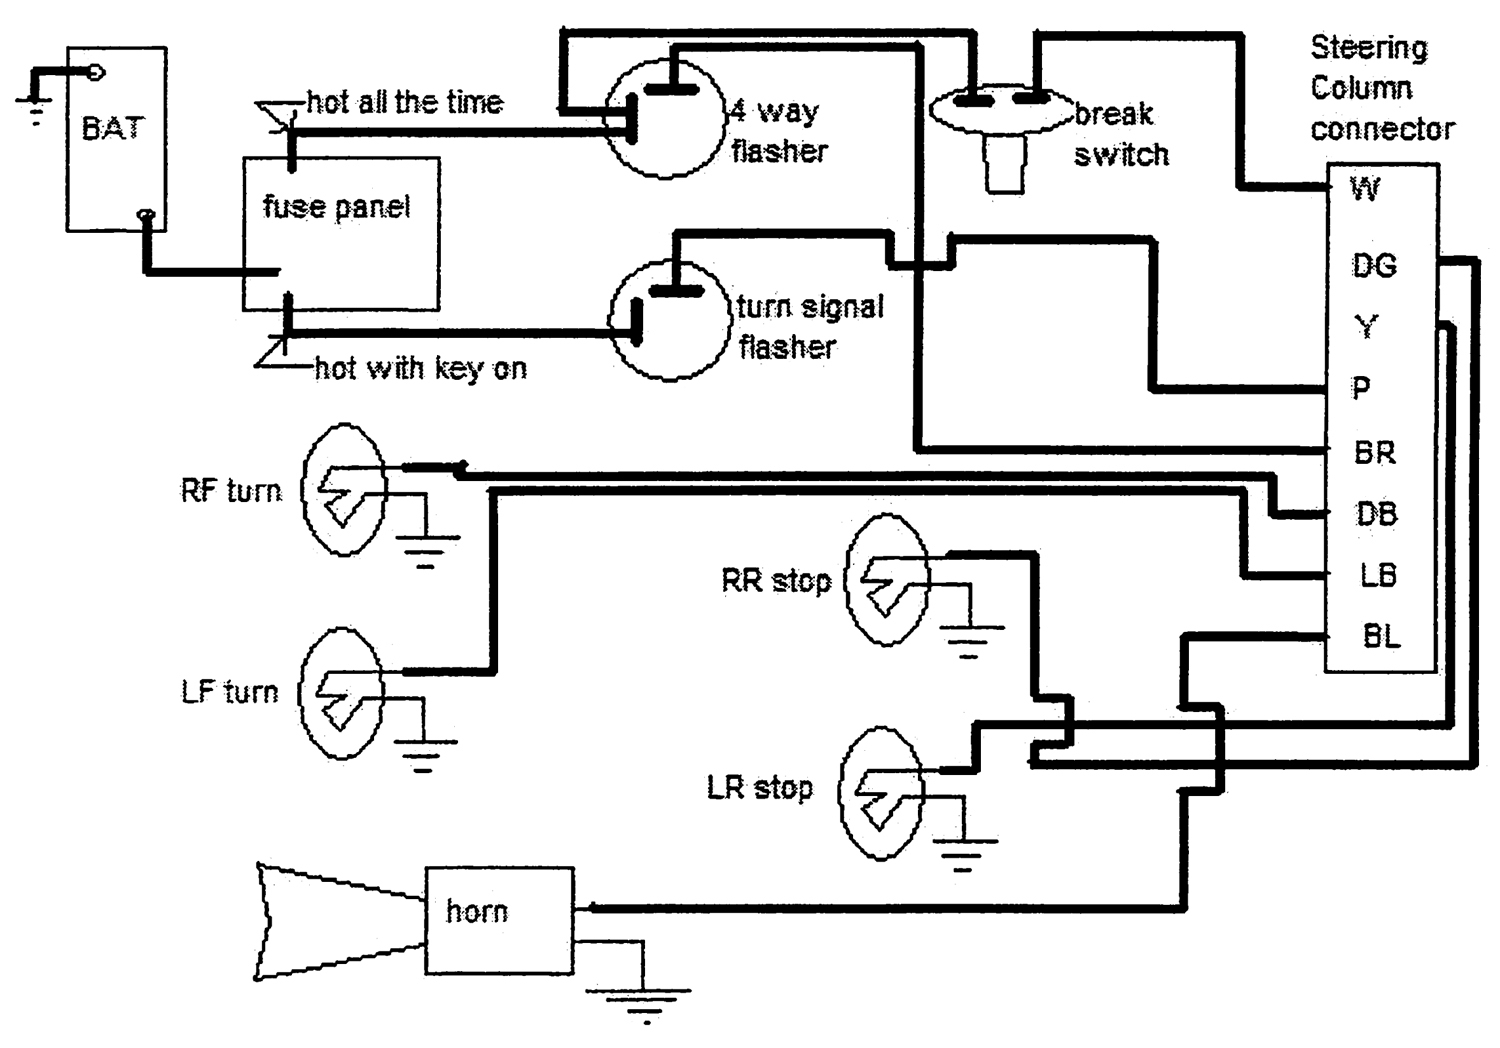 Gm Steering    Column       Wiring       Schematic      Free    Wiring       Diagram